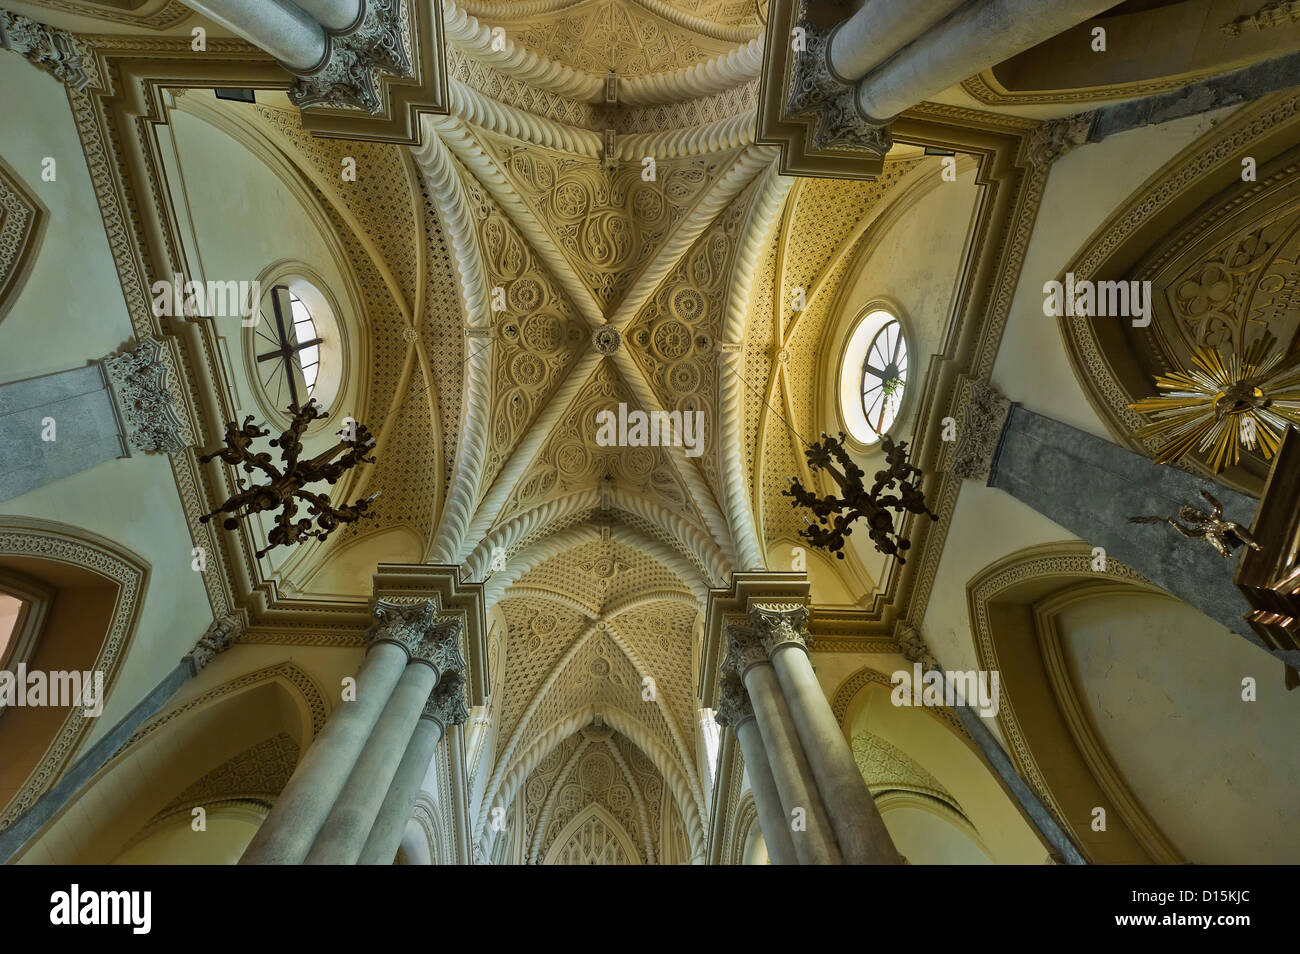 the cross vault of the catholic cathedral of Erice, Trapani province, Sicily, Italy - Stock Image